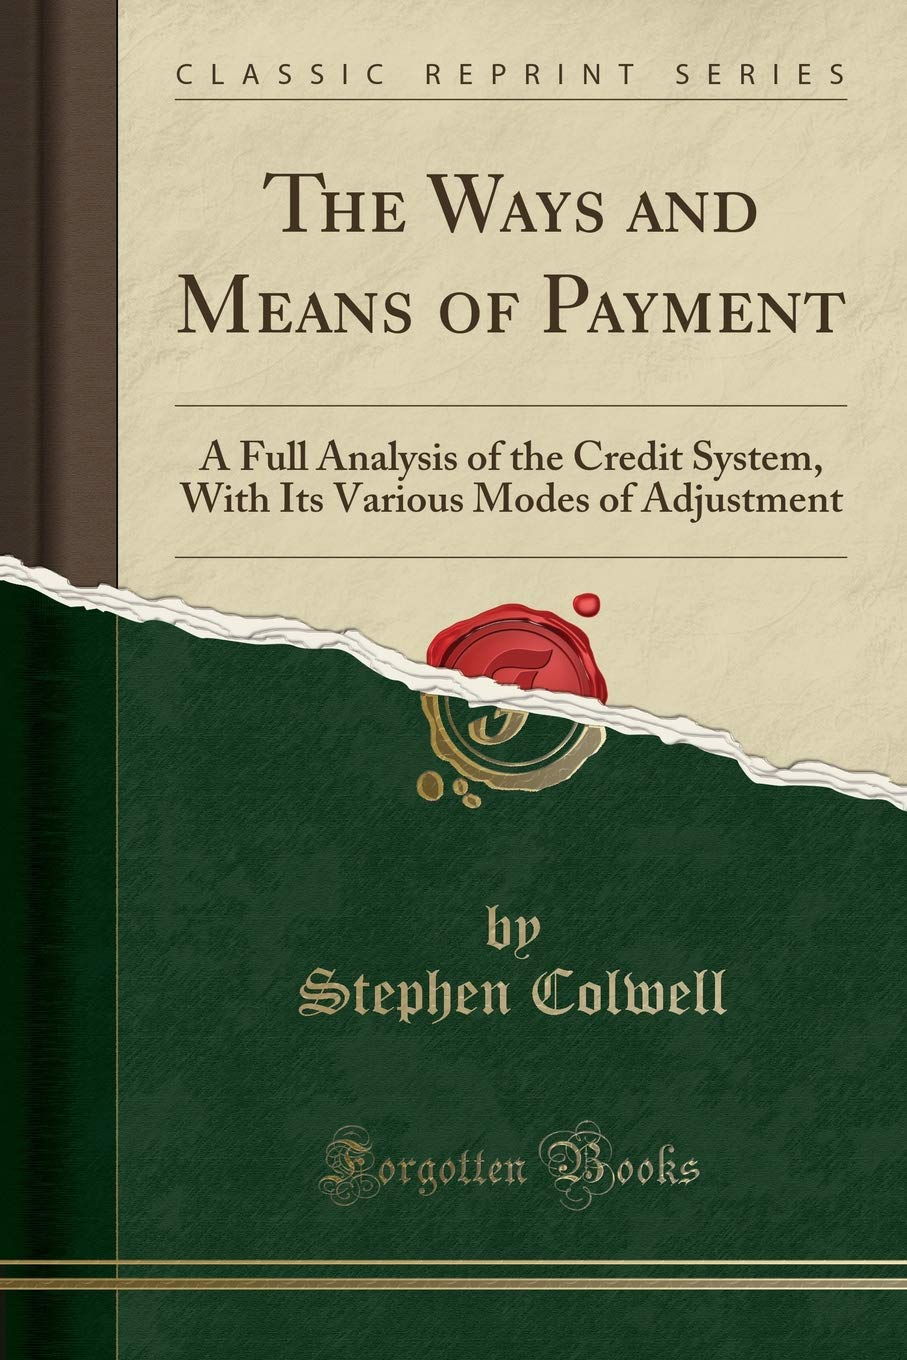 The Ways and Means of Payment: A Full Analysis of the Credit System, With Its Various Modes of Adjustment (Classic Reprint) pdf